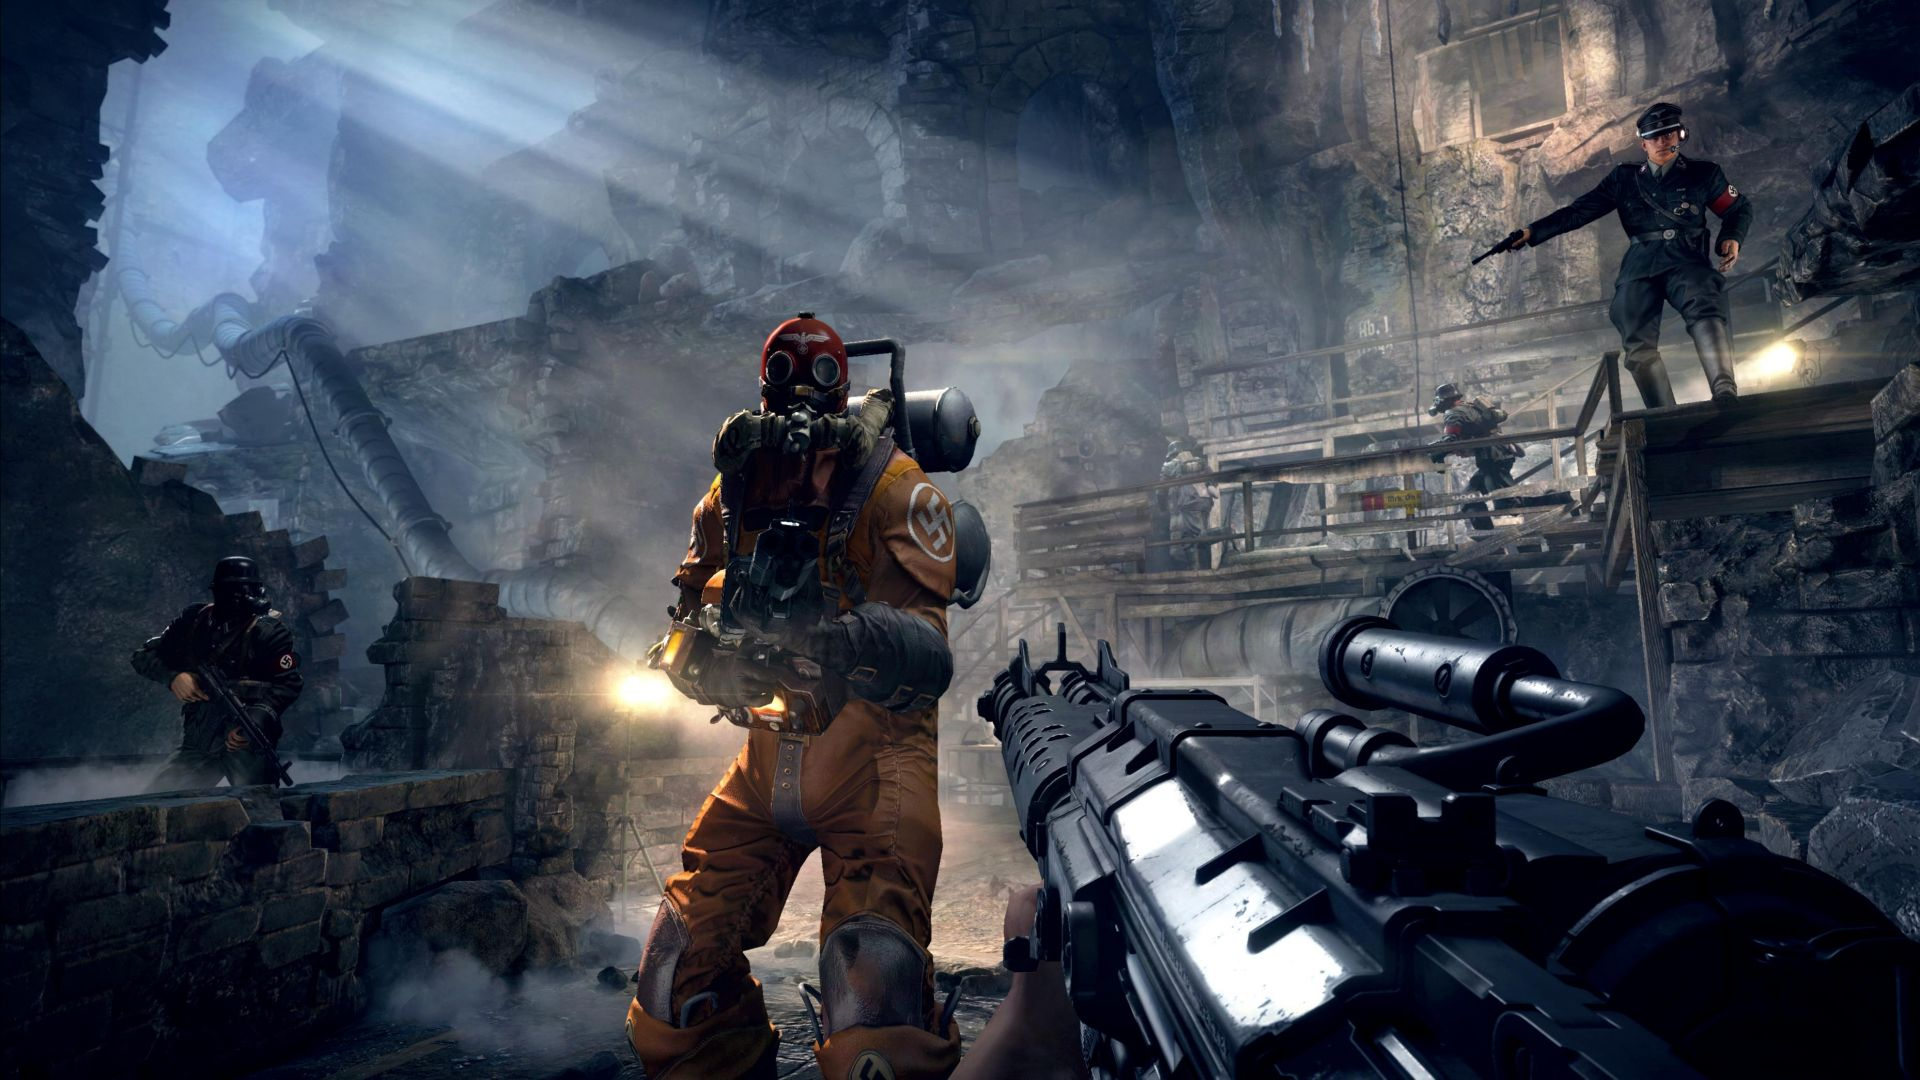 Wolfenstein: The Old Blood, Best Games 2015, game, shooter, sci-fi, fps, PC, PS4, Xbox one